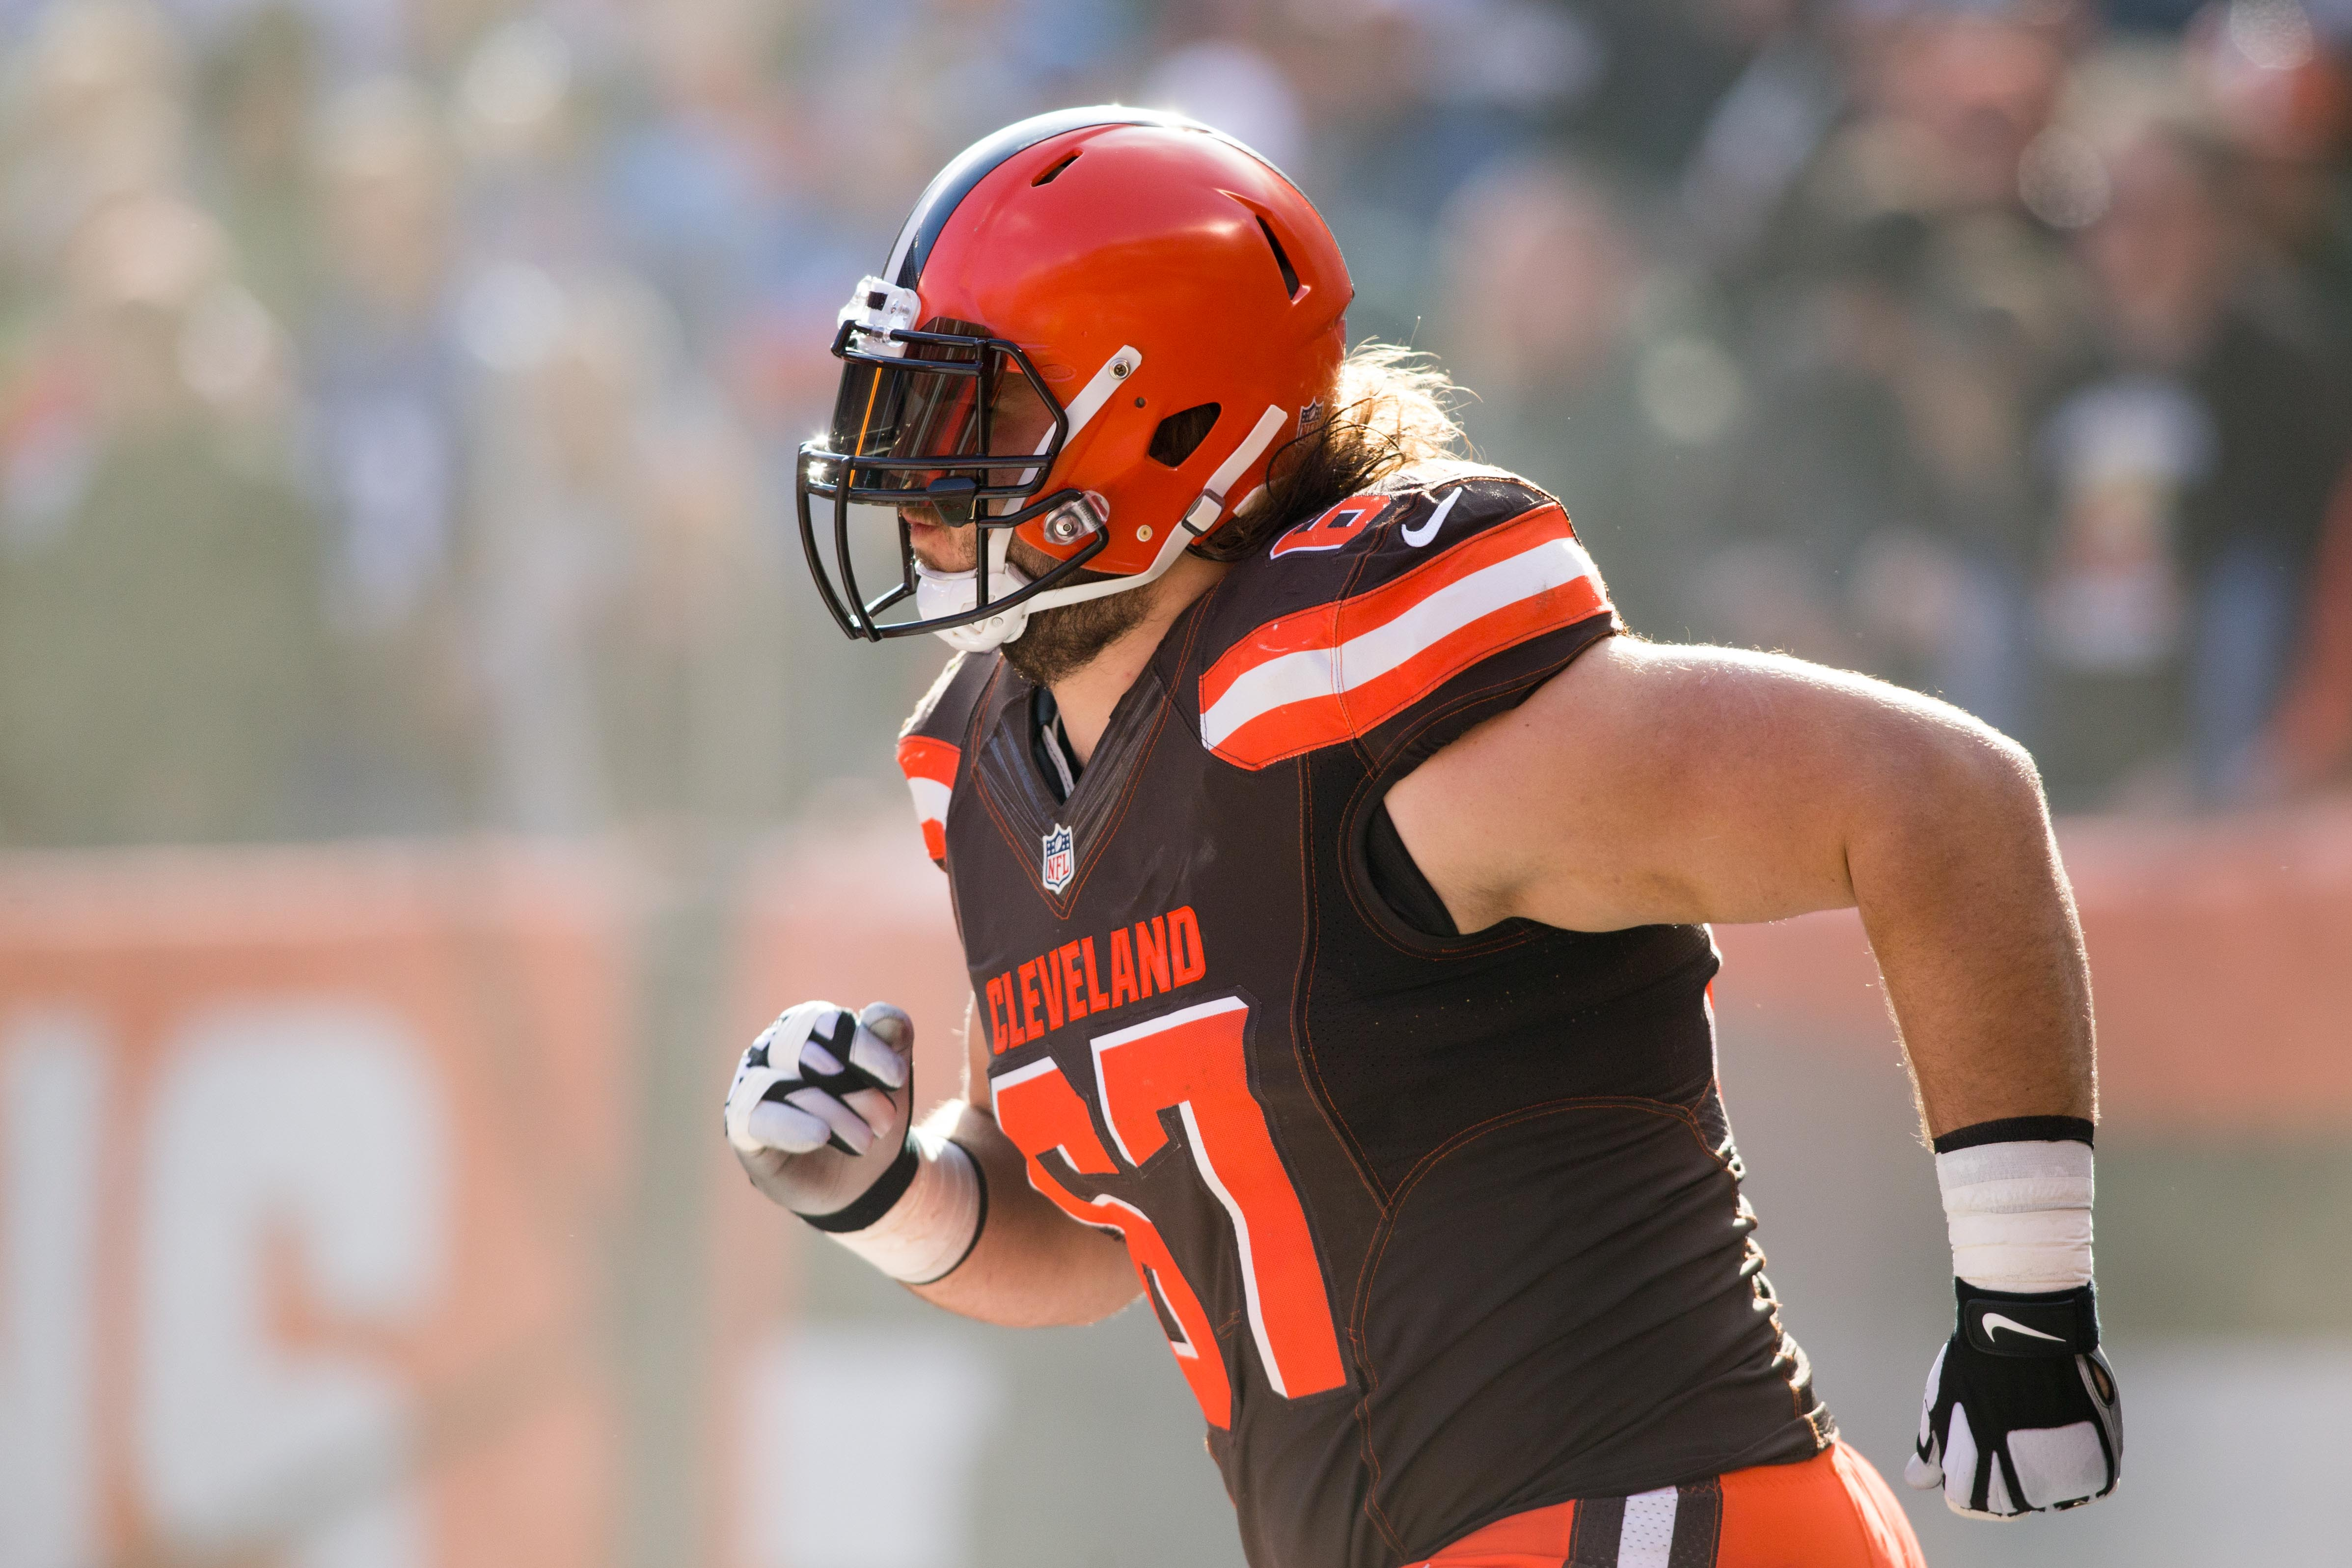 9735857-nfl-new-york-giants-at-cleveland-browns-1